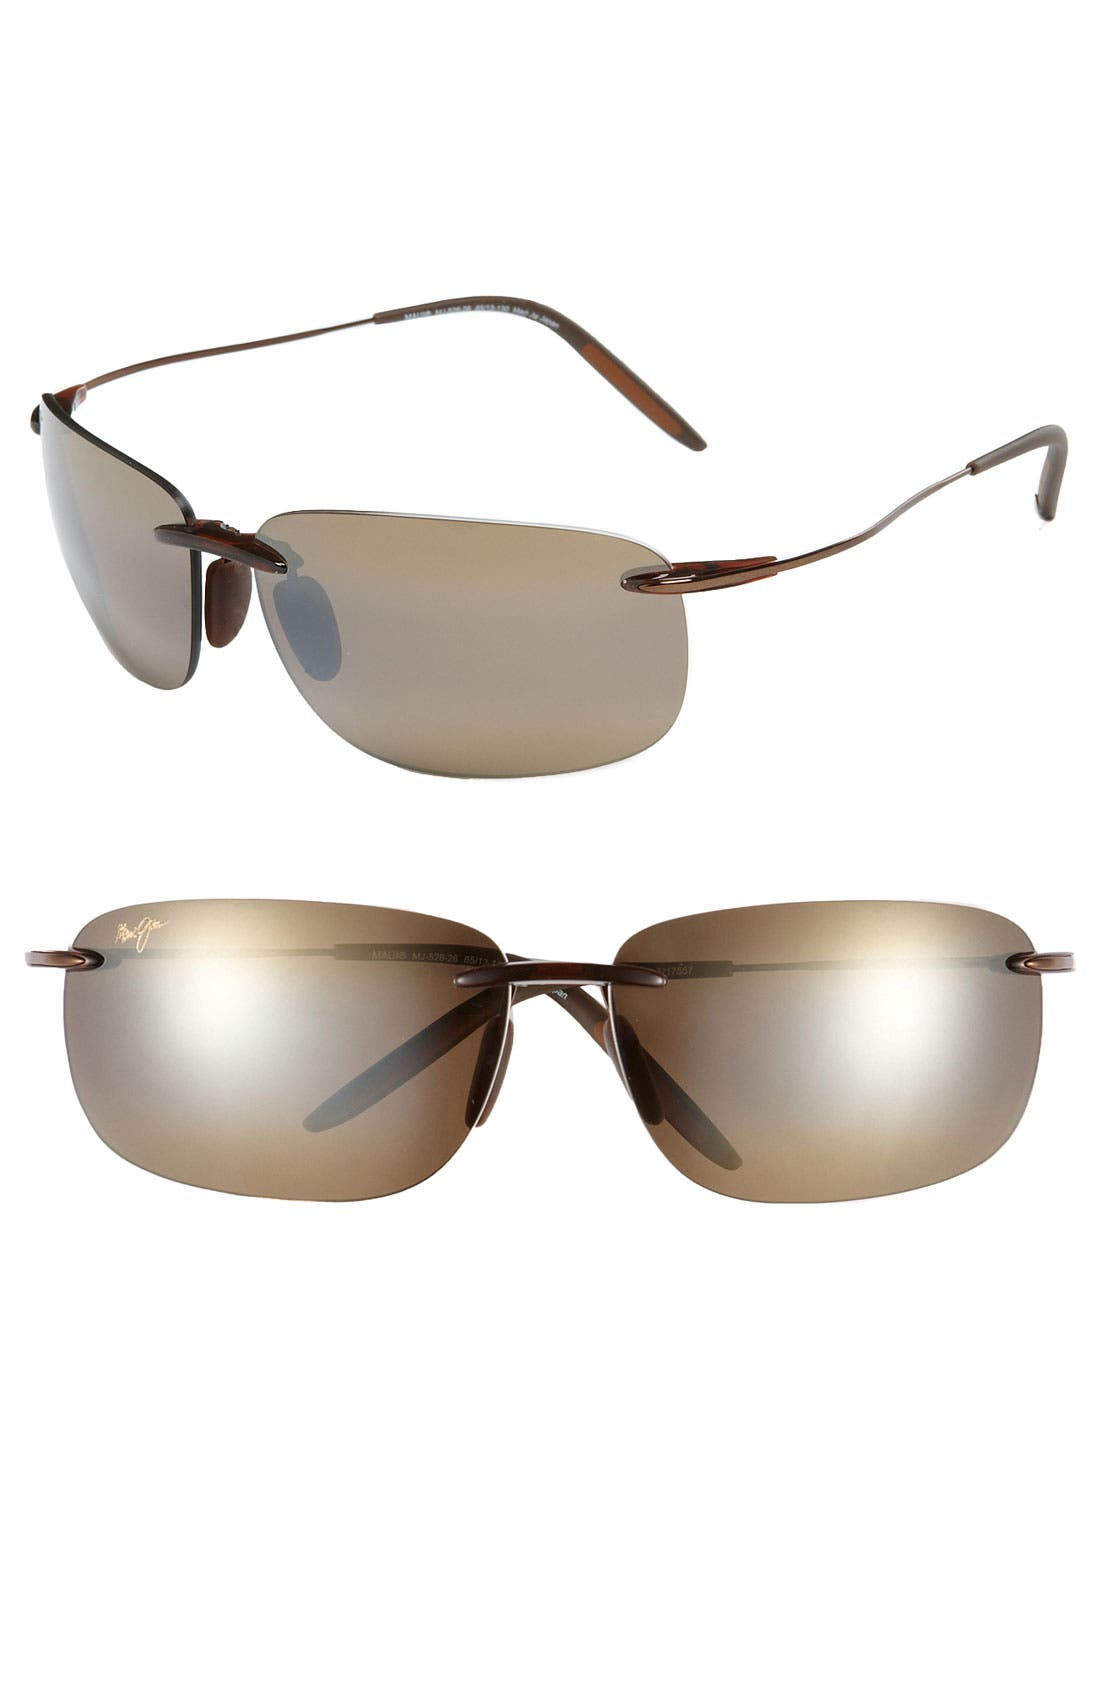 Olowalu 65mm PolarizedPlus2<sup>®</sup> Rimless Sunglasses,                             Main thumbnail 1, color,                             Rootbeer Copper/ Bronze